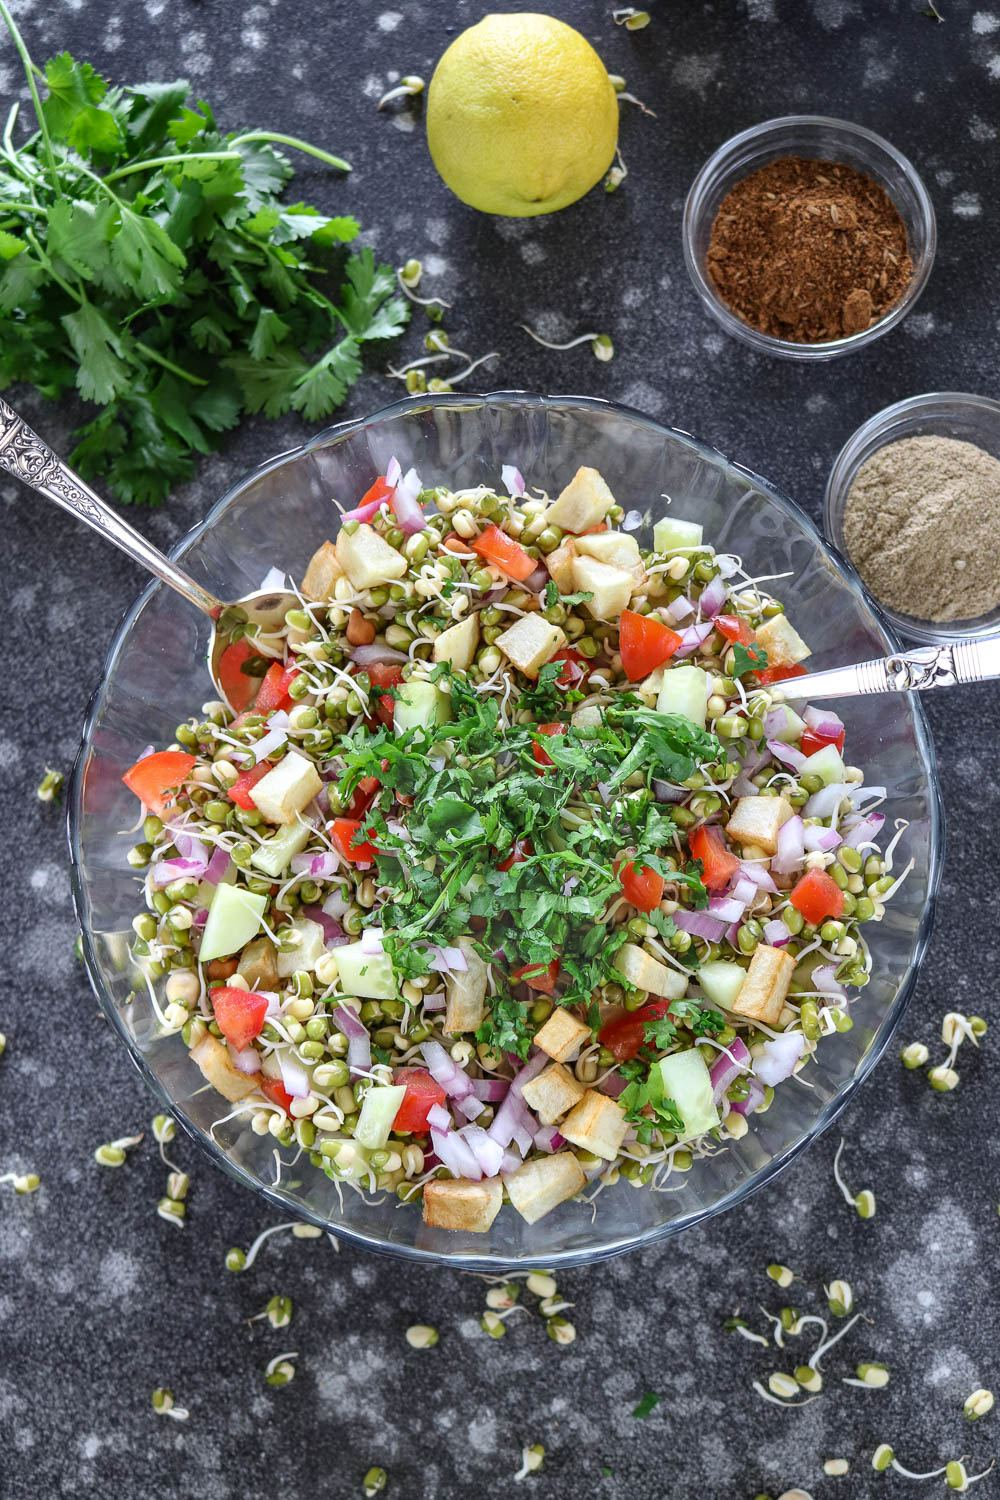 Step by step Moong Bean Sprouts Salad- Ruchiskitchen